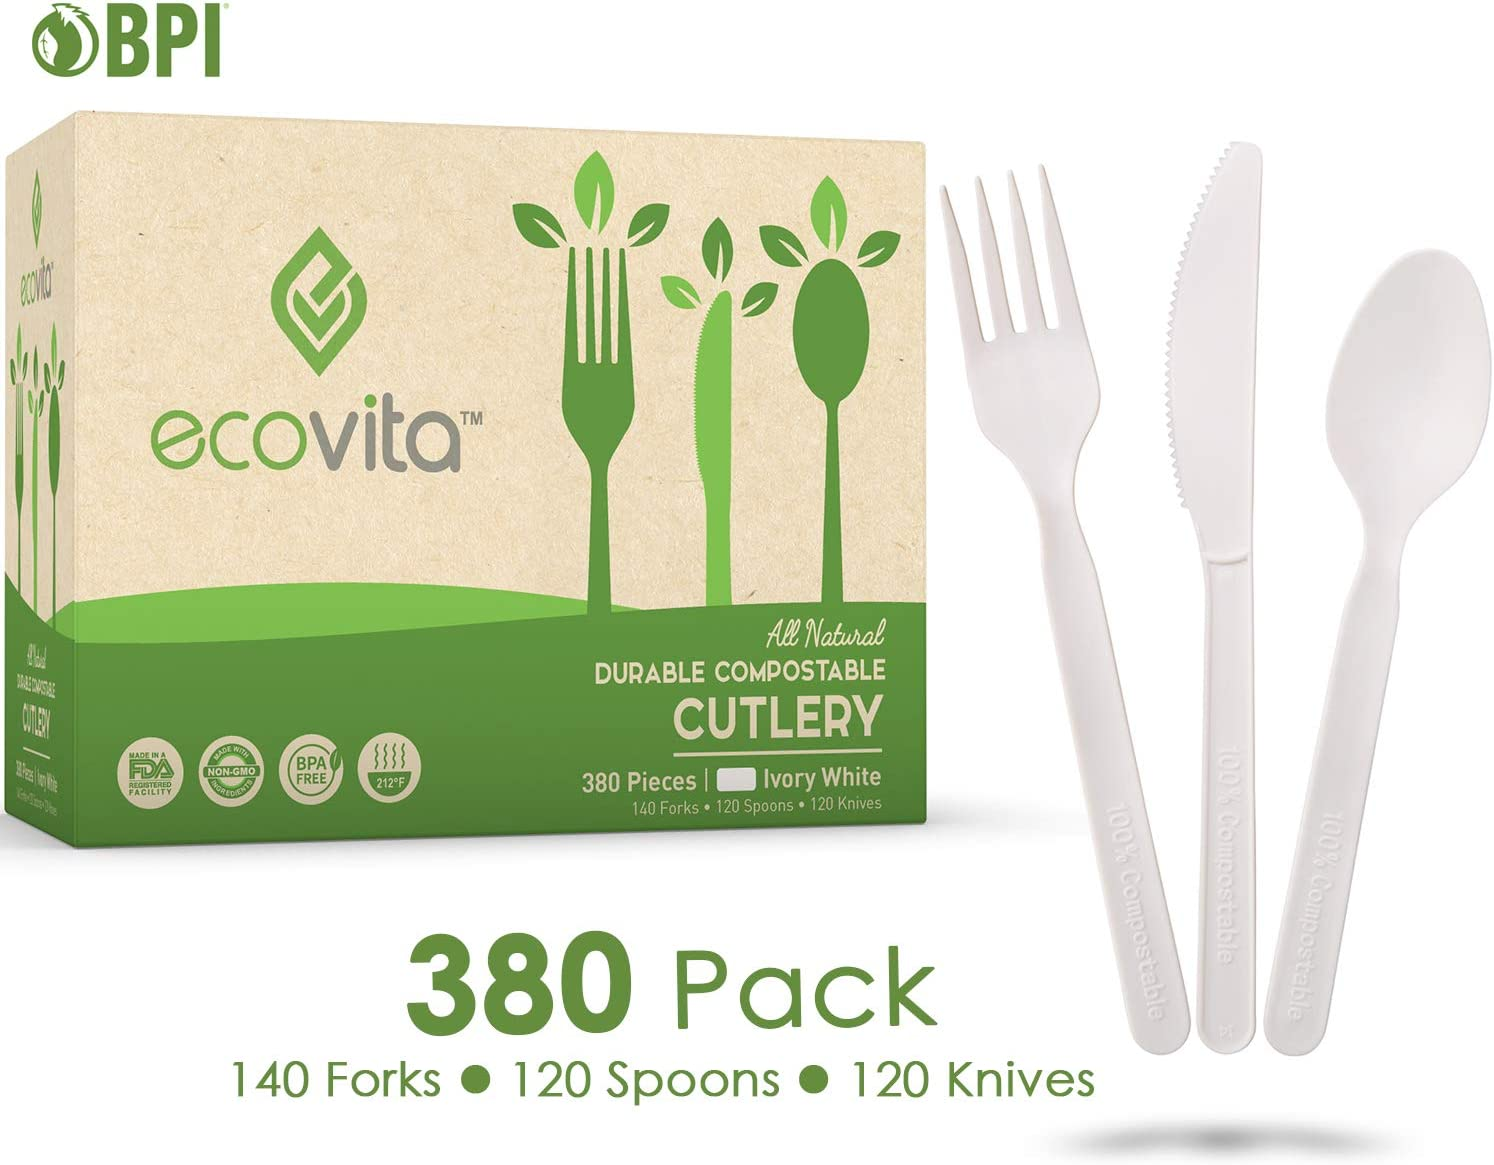 100% Compostable Forks Spoons Knives Cutlery Combo Set - 380 Large Disposable Utensils (7 in.) Eco Friendly Durable and Heat Resistant Plastic Silverware Alternative with Convenient Tray by Ecovita